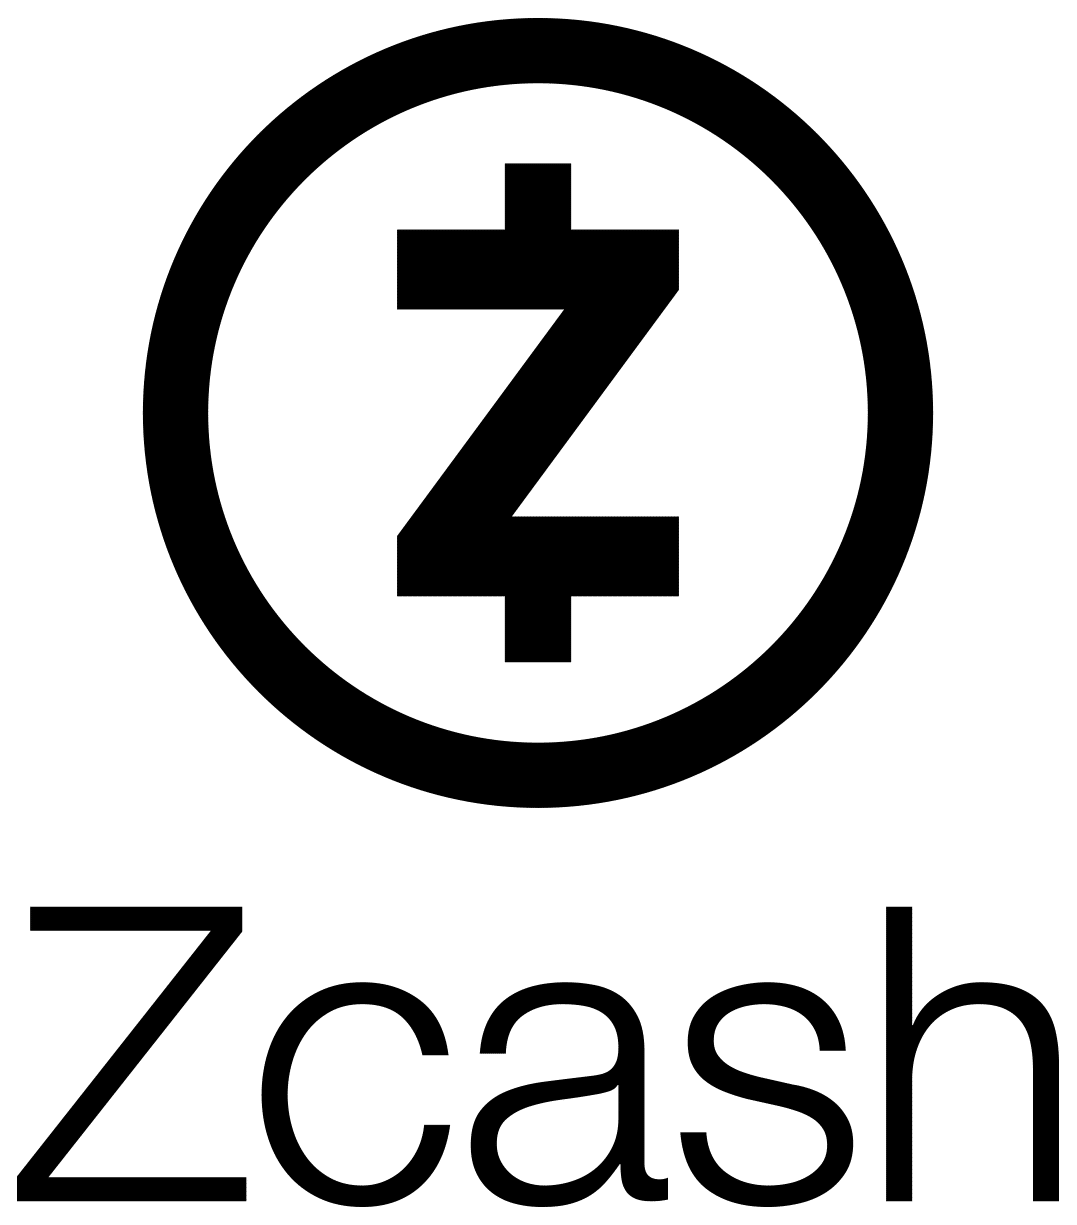 Black vertical Zcash logo